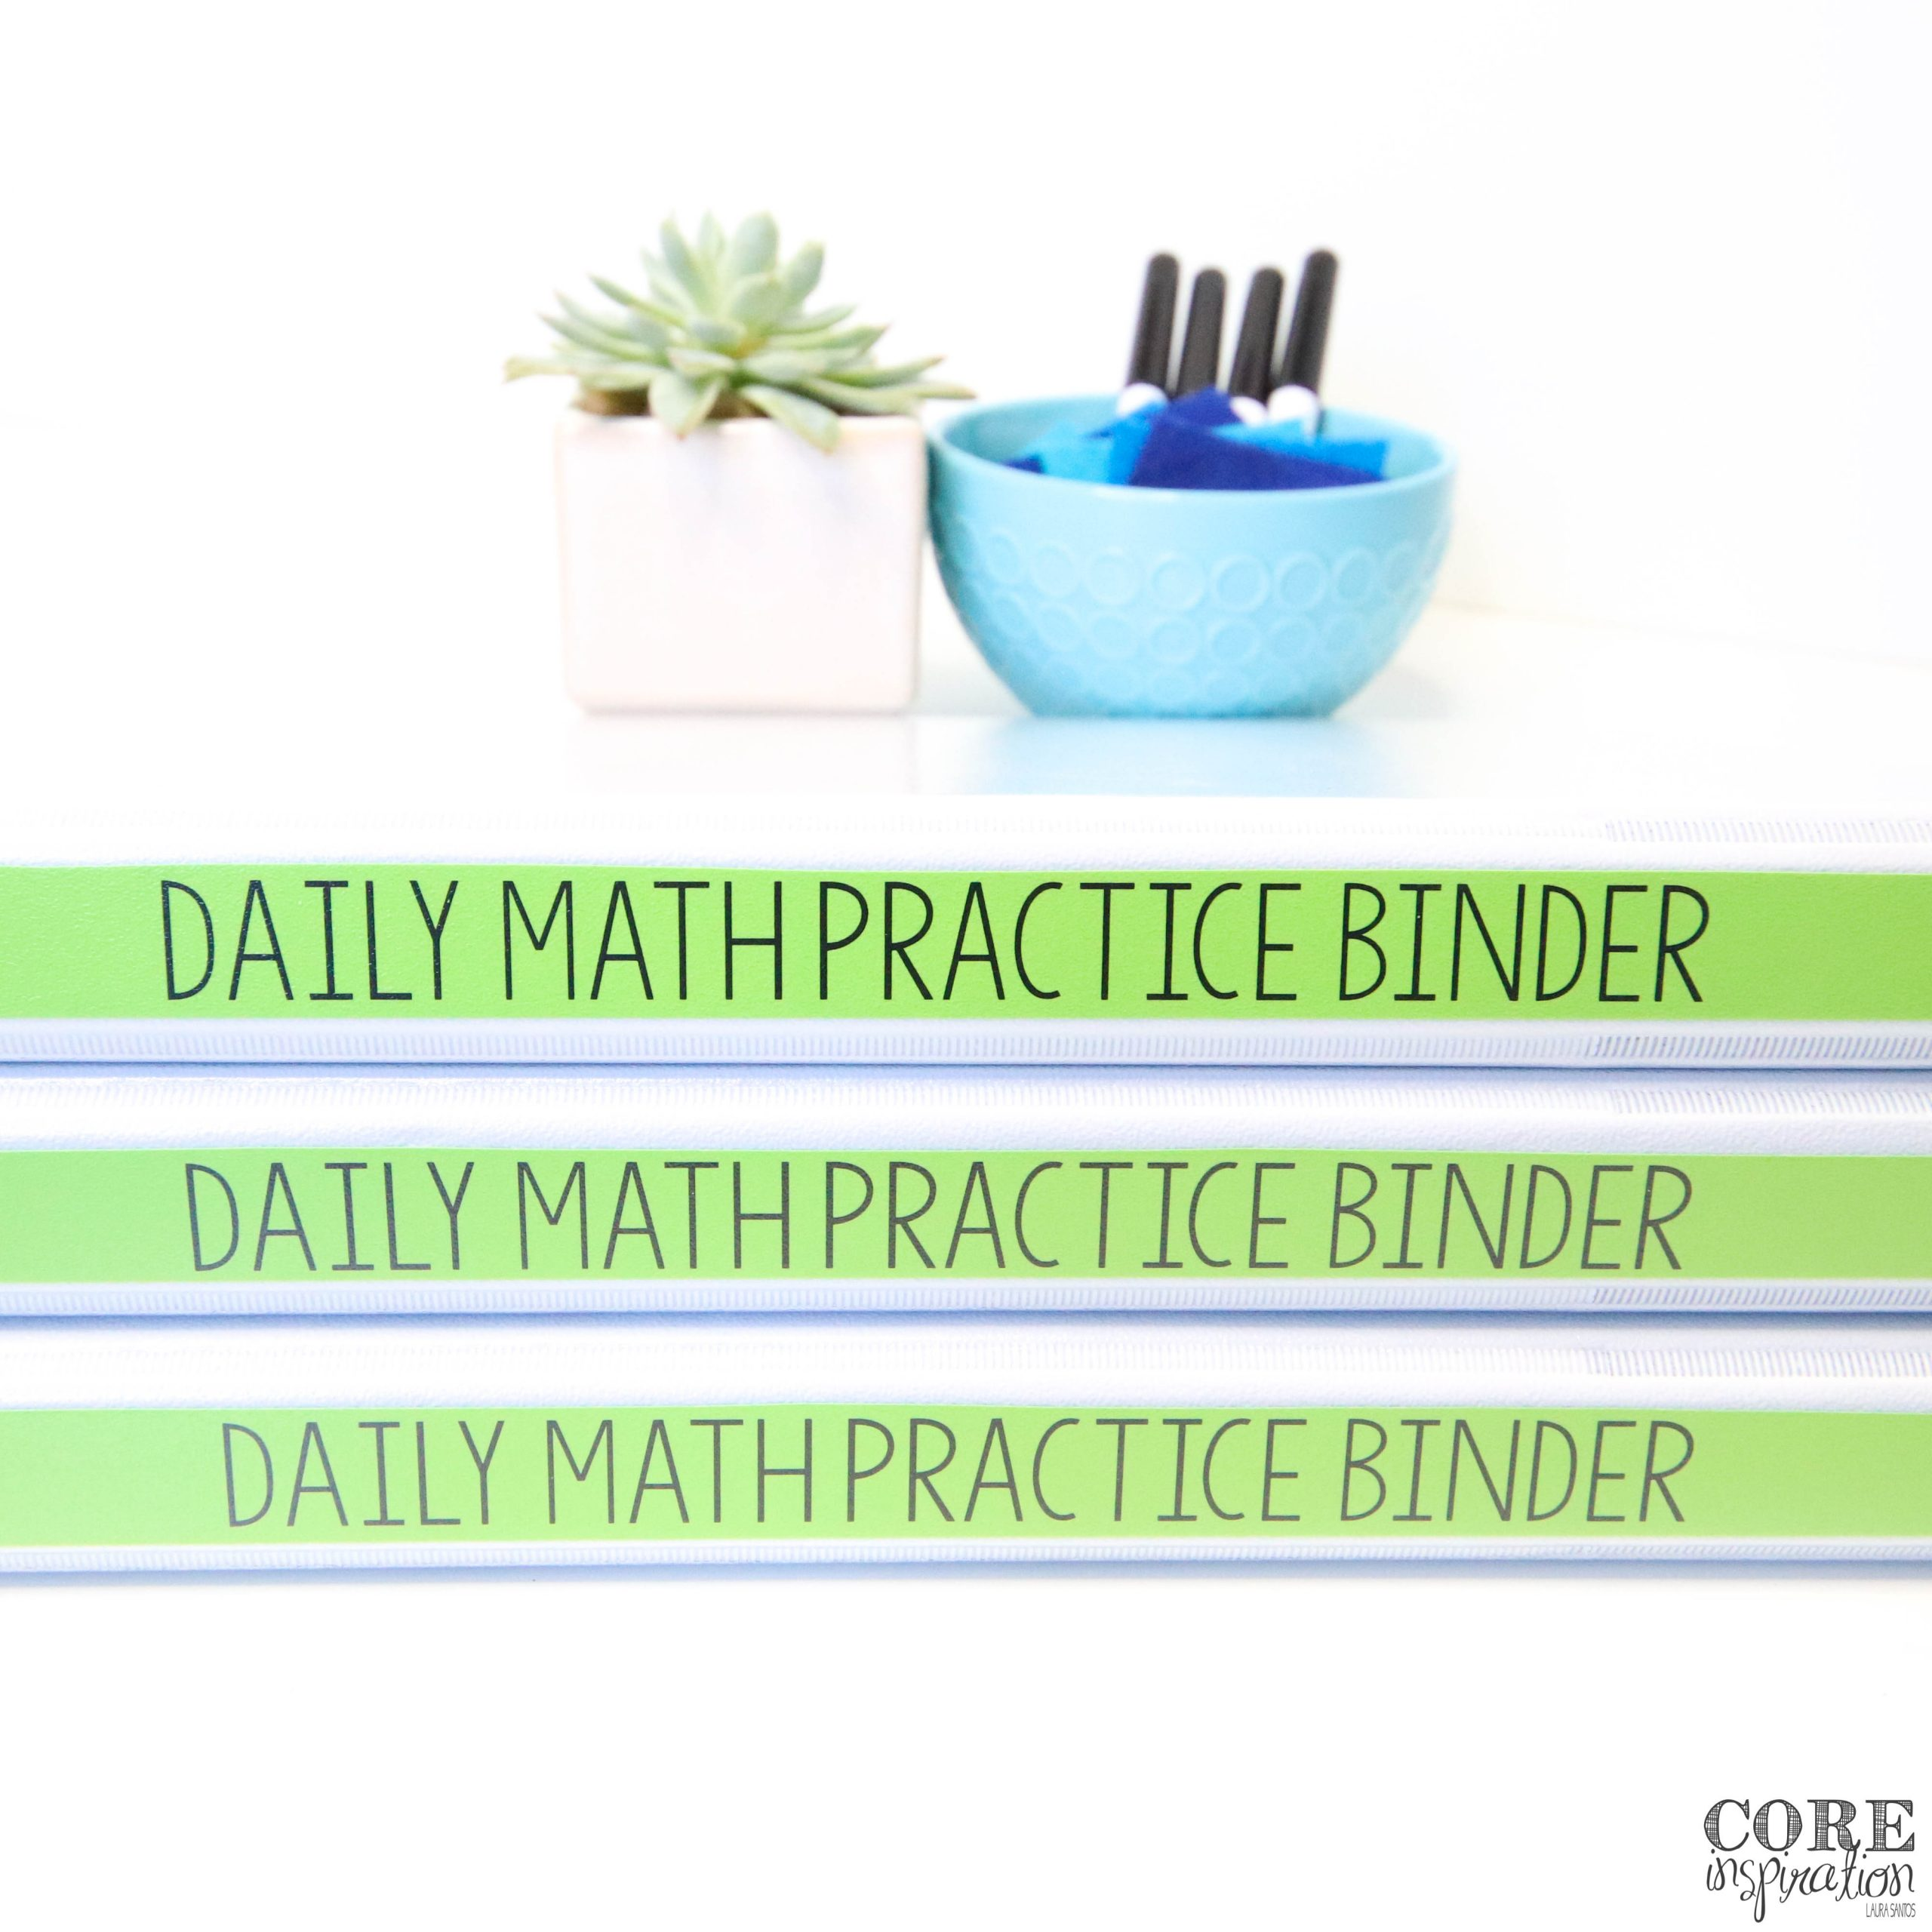 """Three binders with spines that read """"Daily Math Practice Binder"""". Succulent plant and whiteboard markers in the background."""